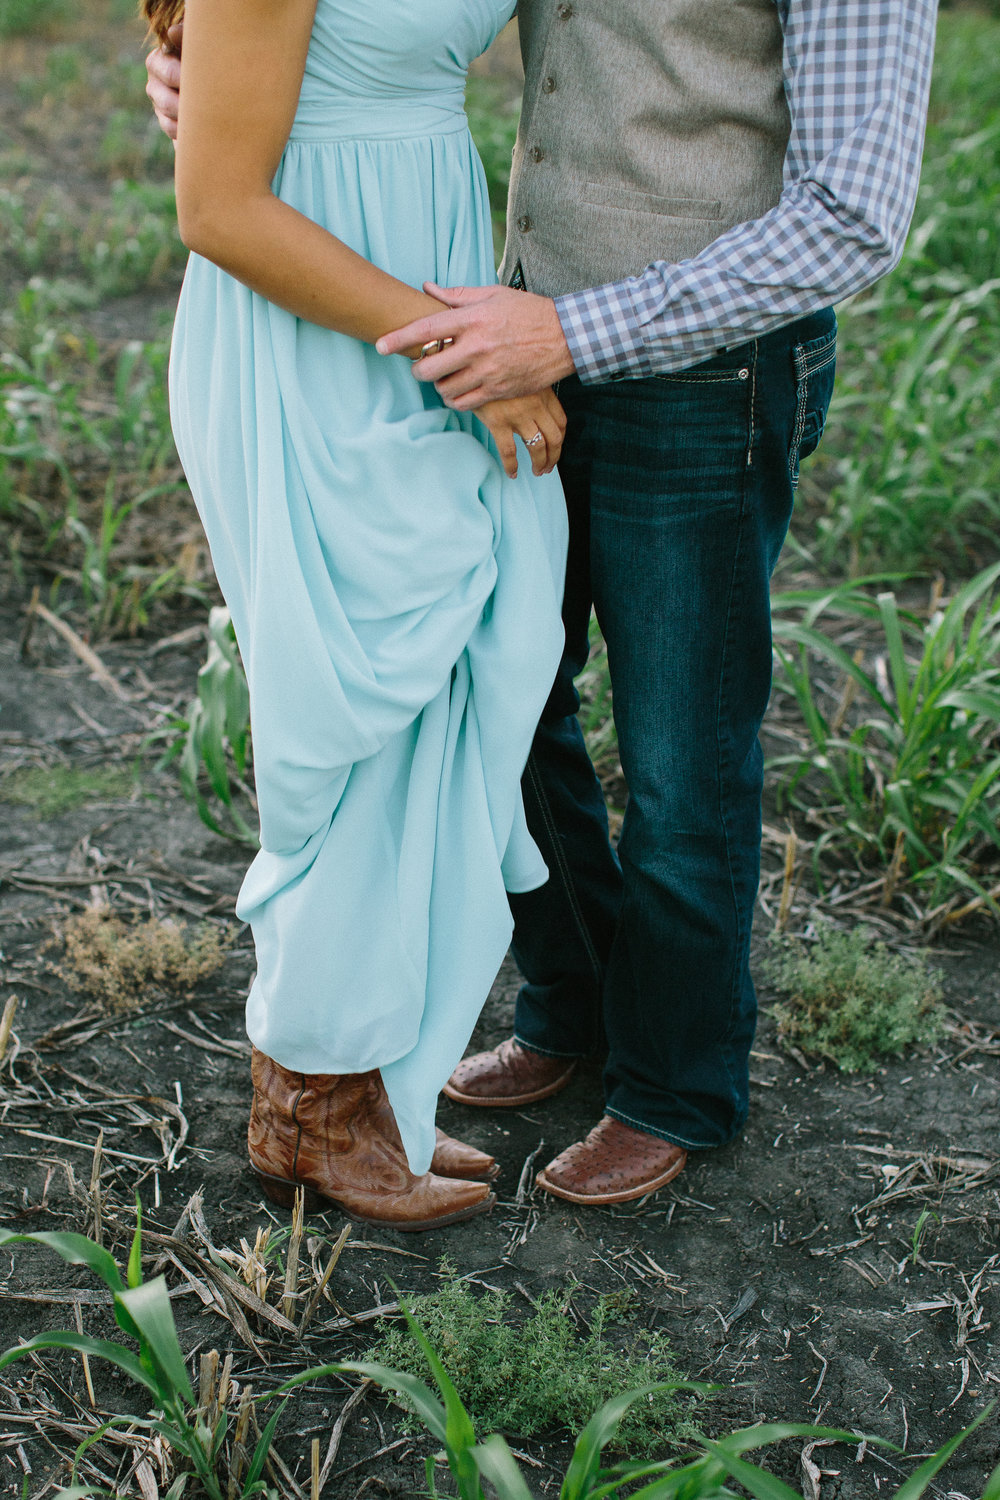 Ellen Ashton Photography. Dallas Wedding photographers. dallas weddings. fort worth wedding photographers. dallas engagement session